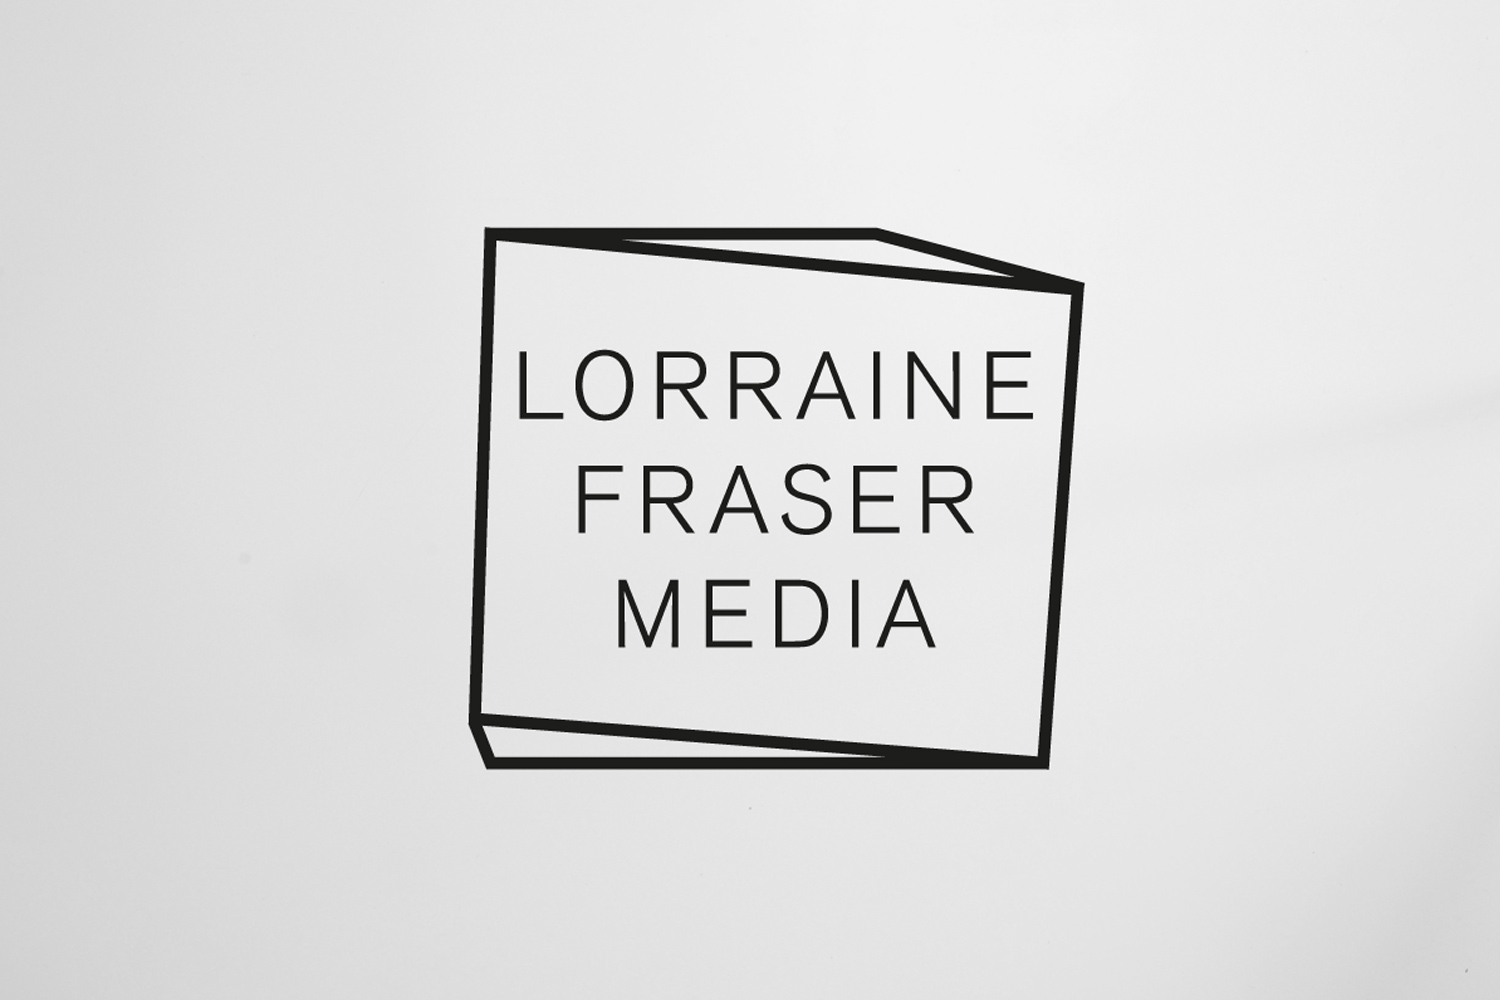 LORRAINE FRASER MEDIA UP TO YOU SERVICIOS PROFESIONALES ARTE & CULTURA DISEÑO GRAFICO BRANDING